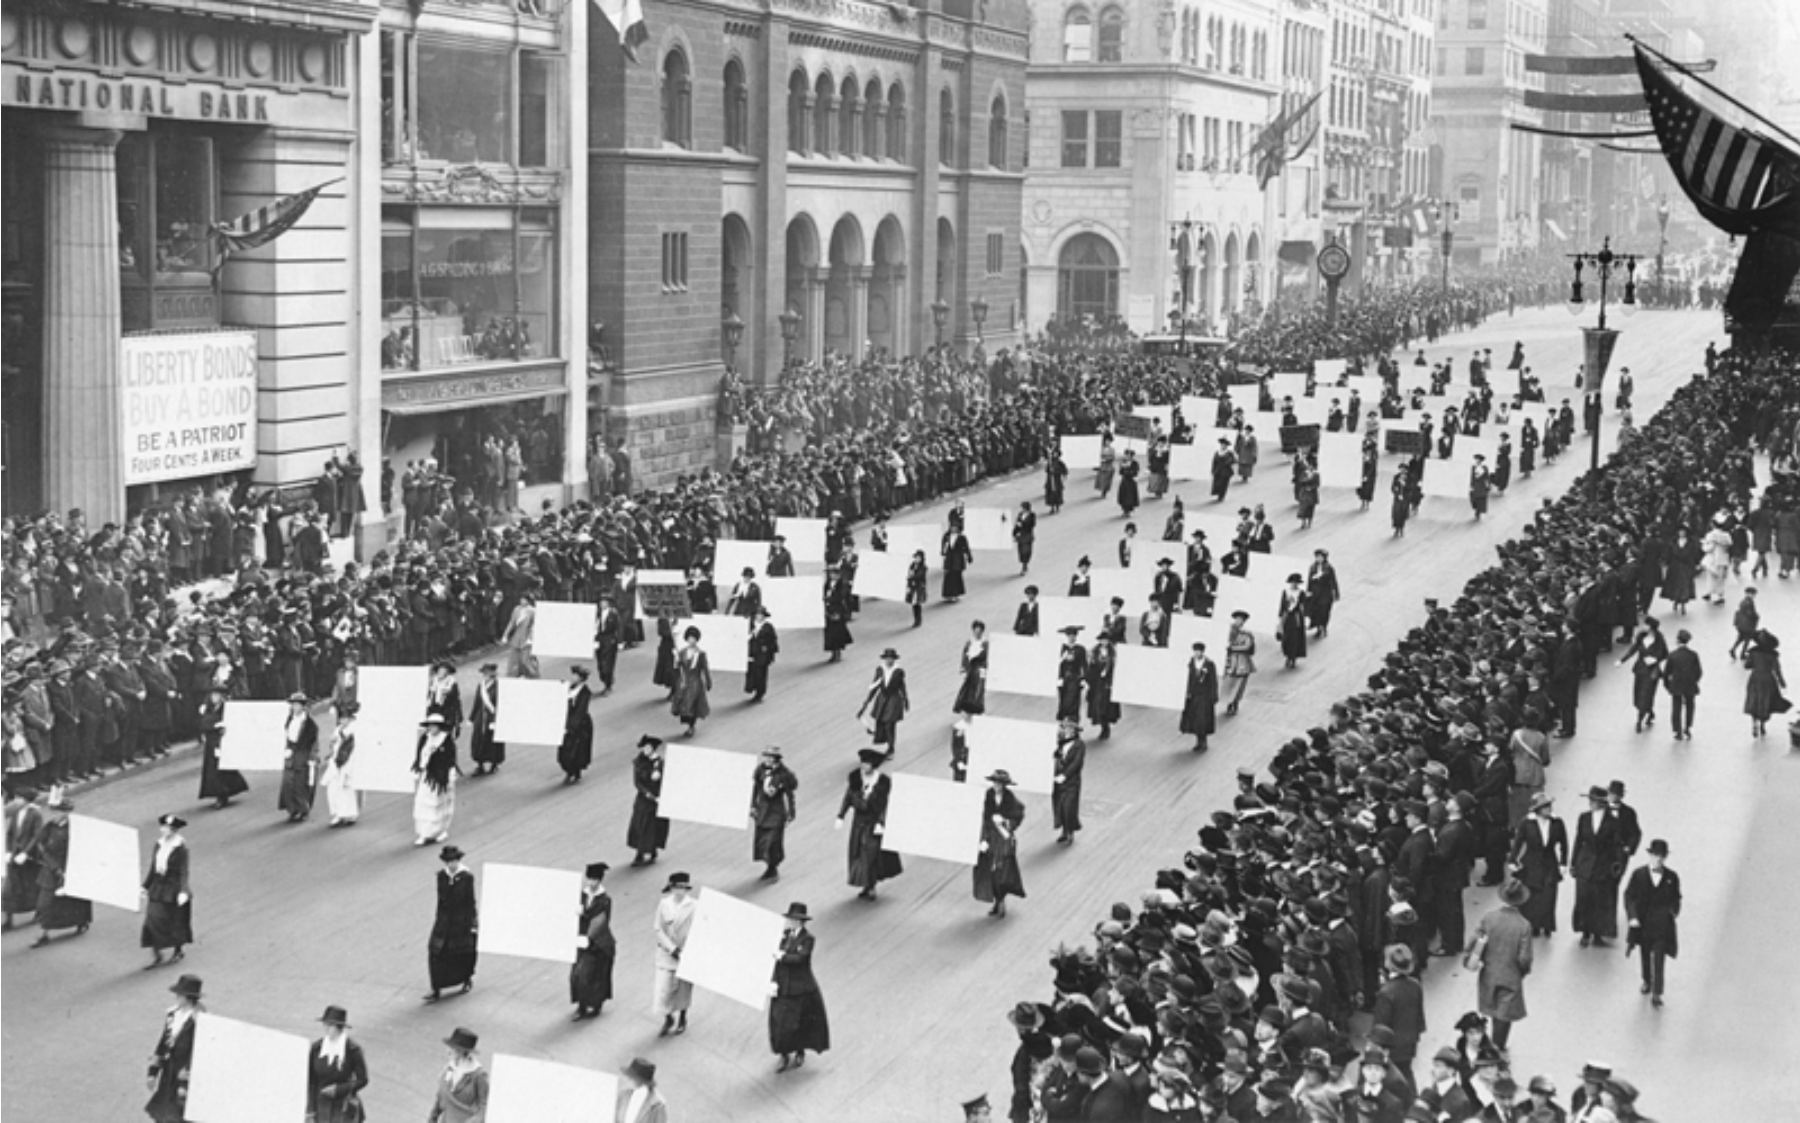 Suffragists parade down fifth avenue in 1917